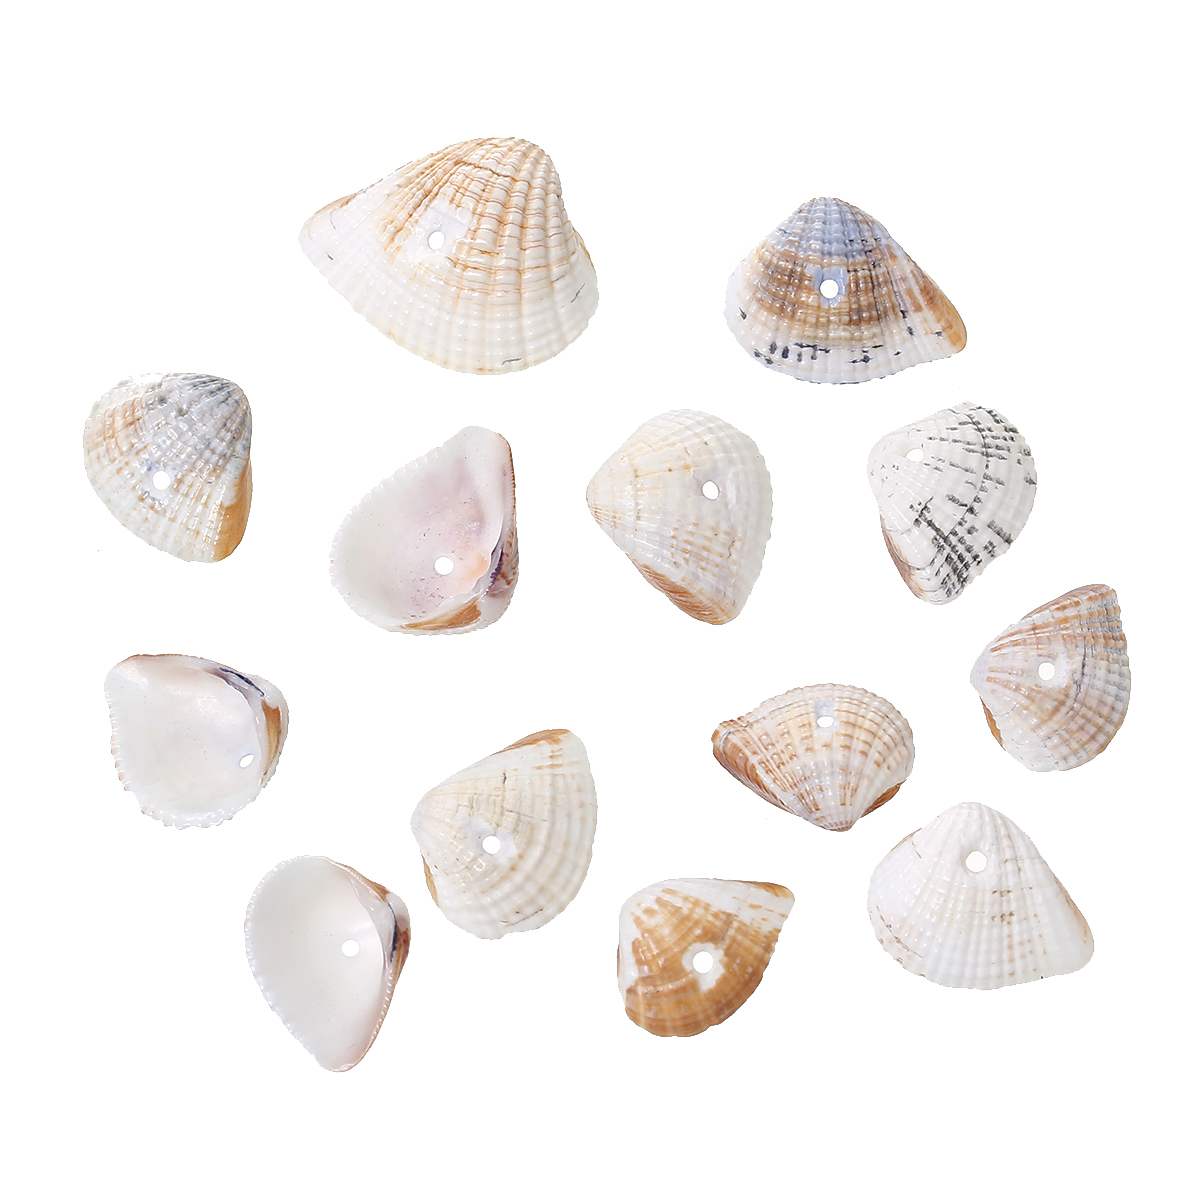 Unique Beaded Periwinkle Seashell Coloring Page: 100 Grams Natural Fan-Shaped Seashell Beads 24x19mm